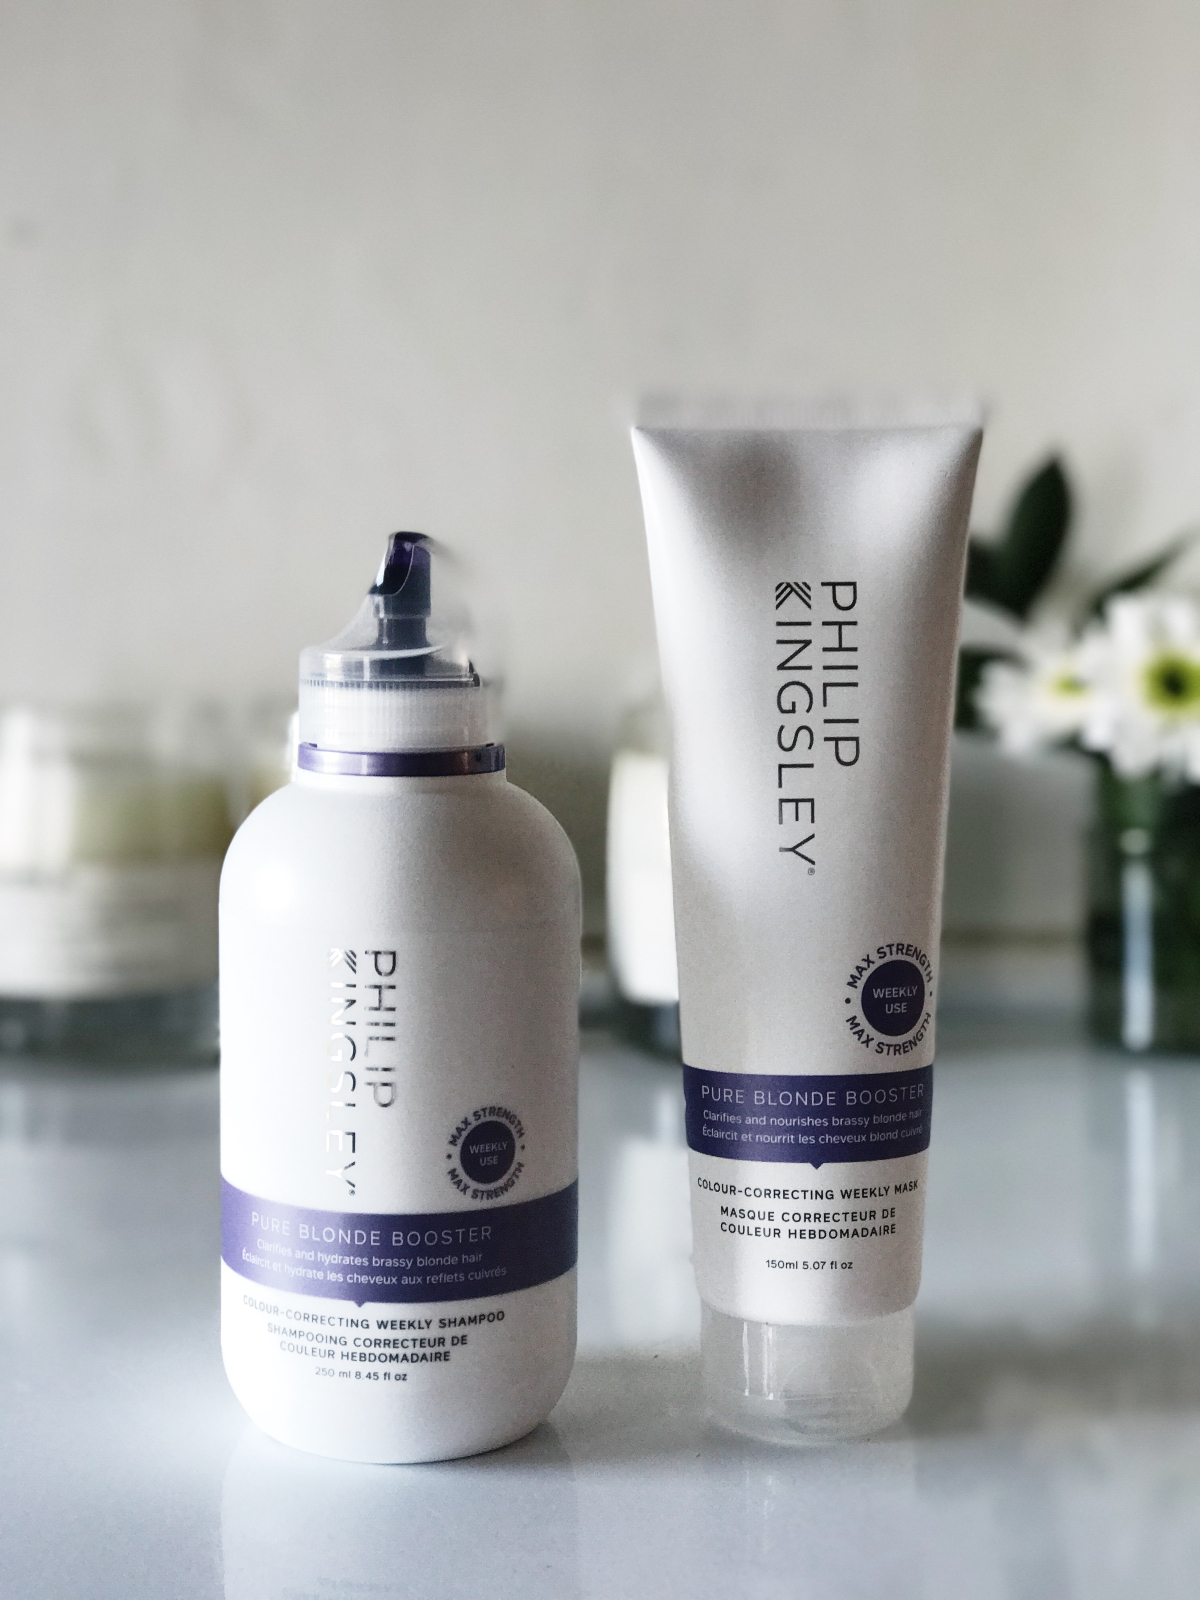 Philip Kingsley Pure Blonde Booster Shampoo Masque Review